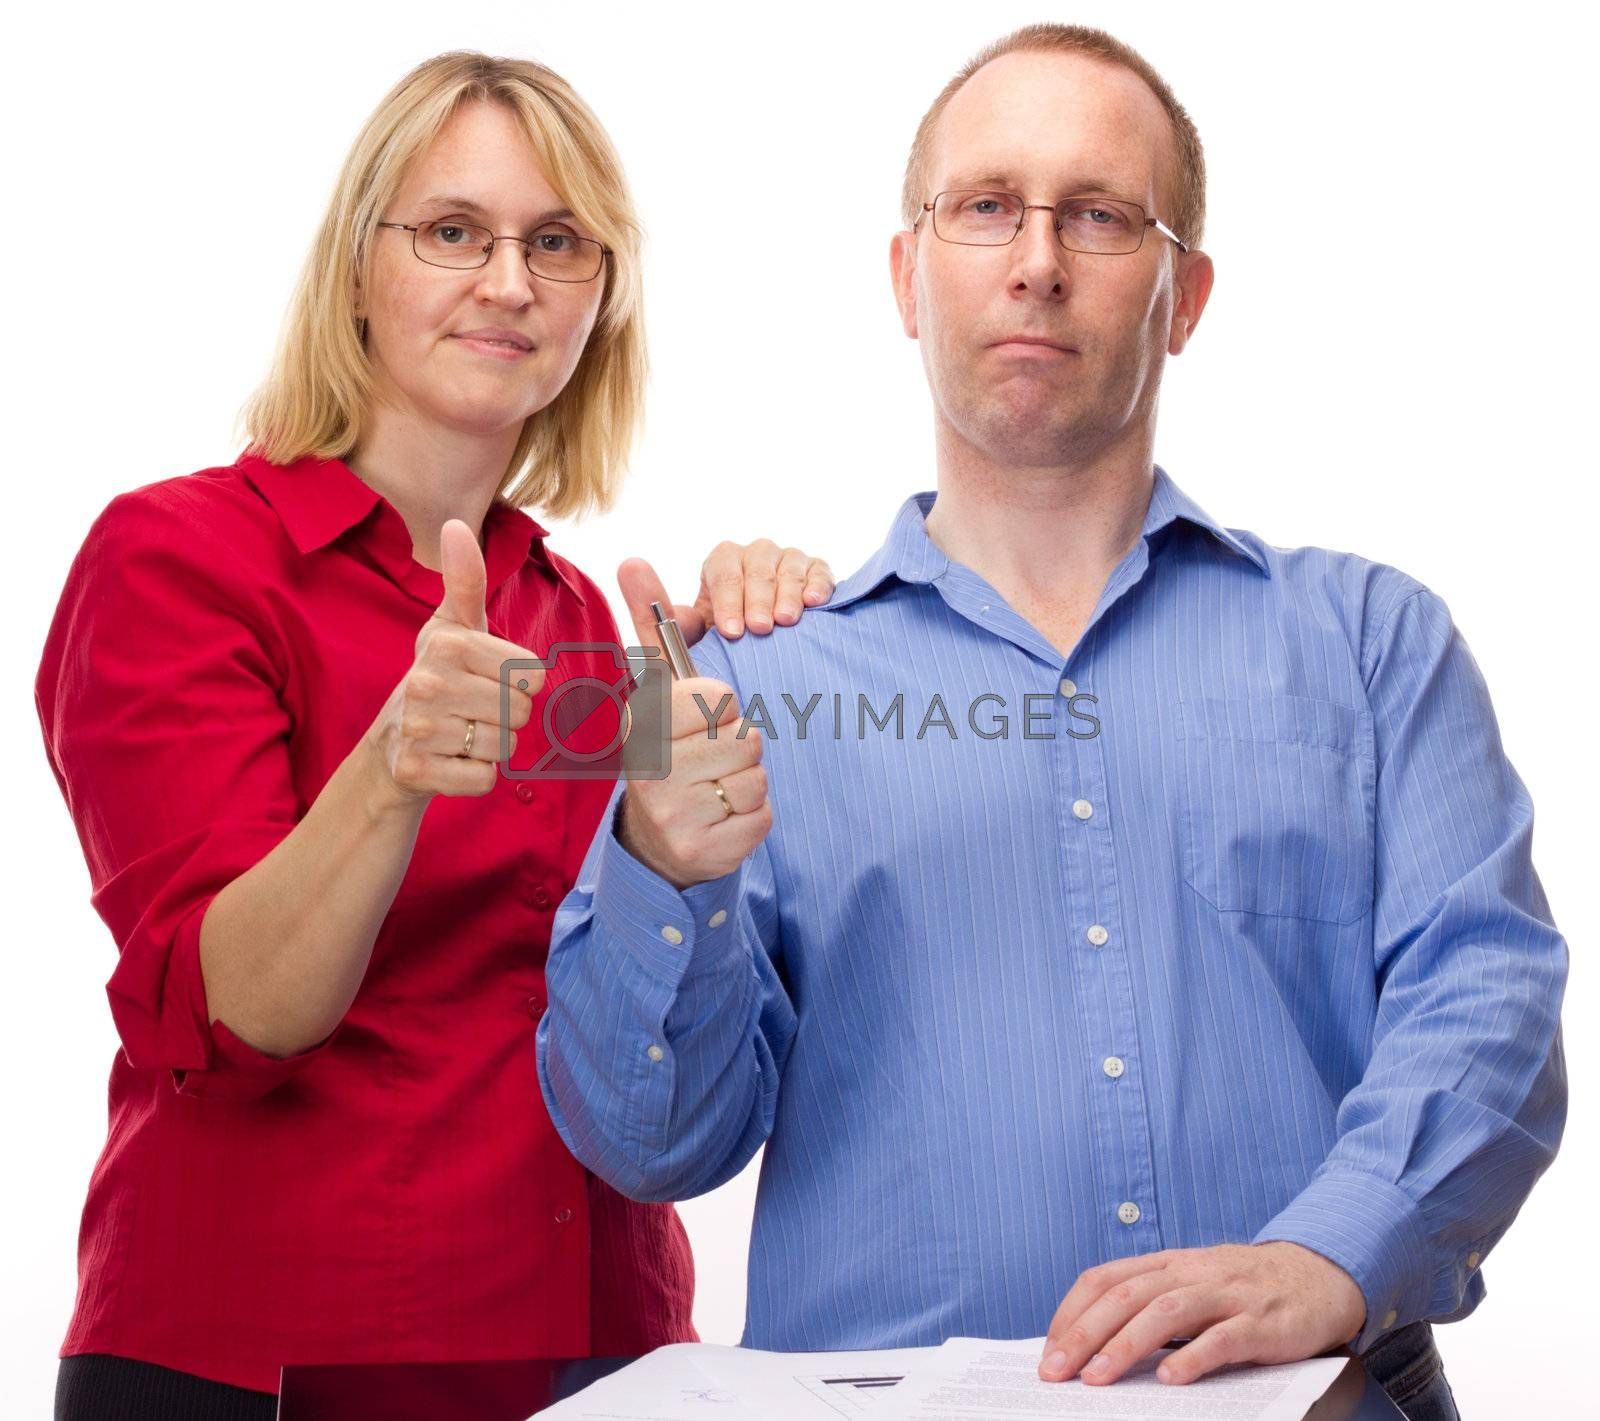 Two business people working